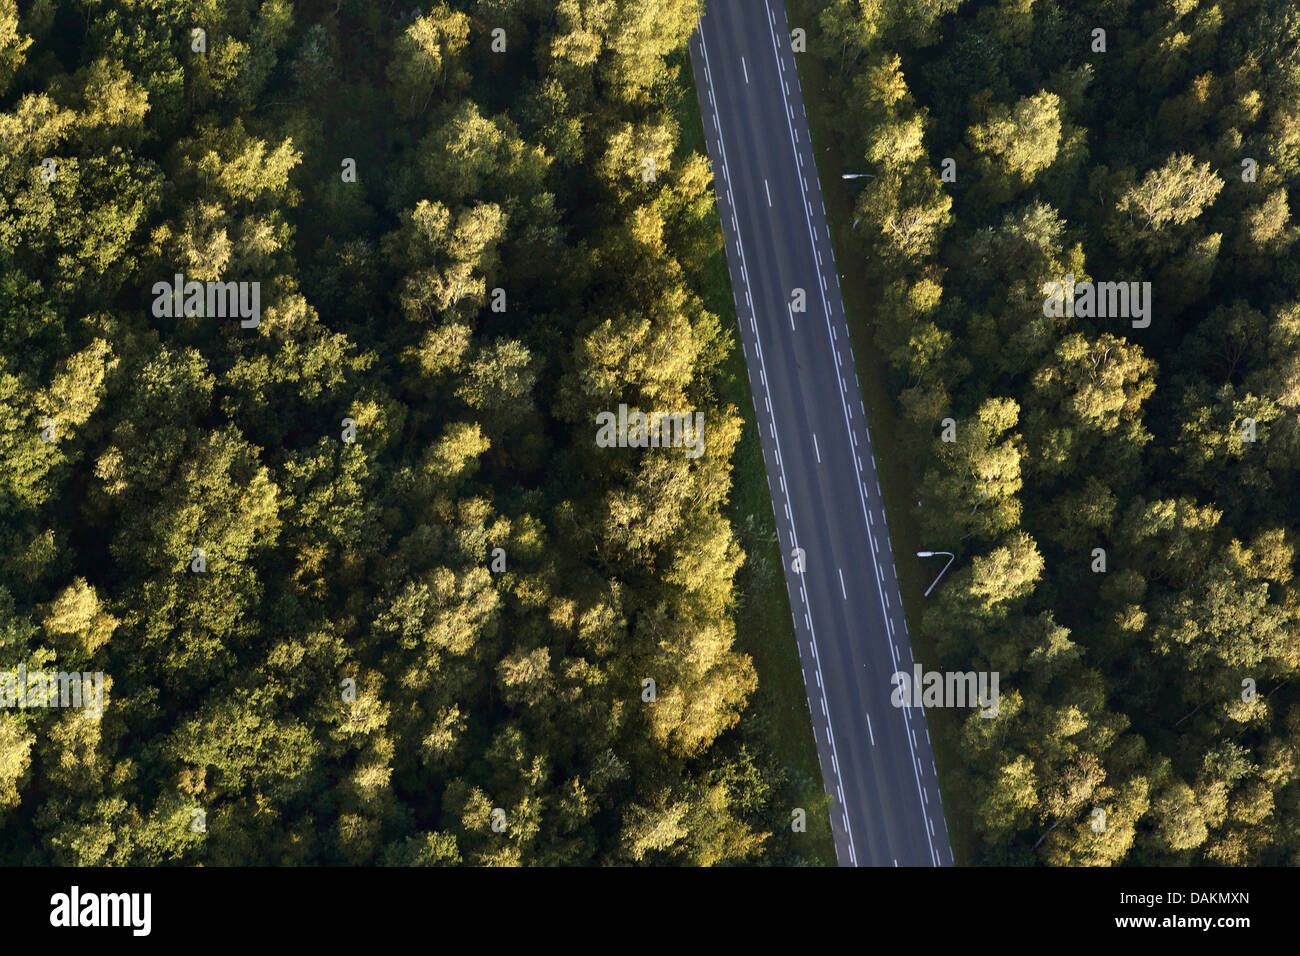 aerial view to street crossing a forest, Belgium - Stock Image